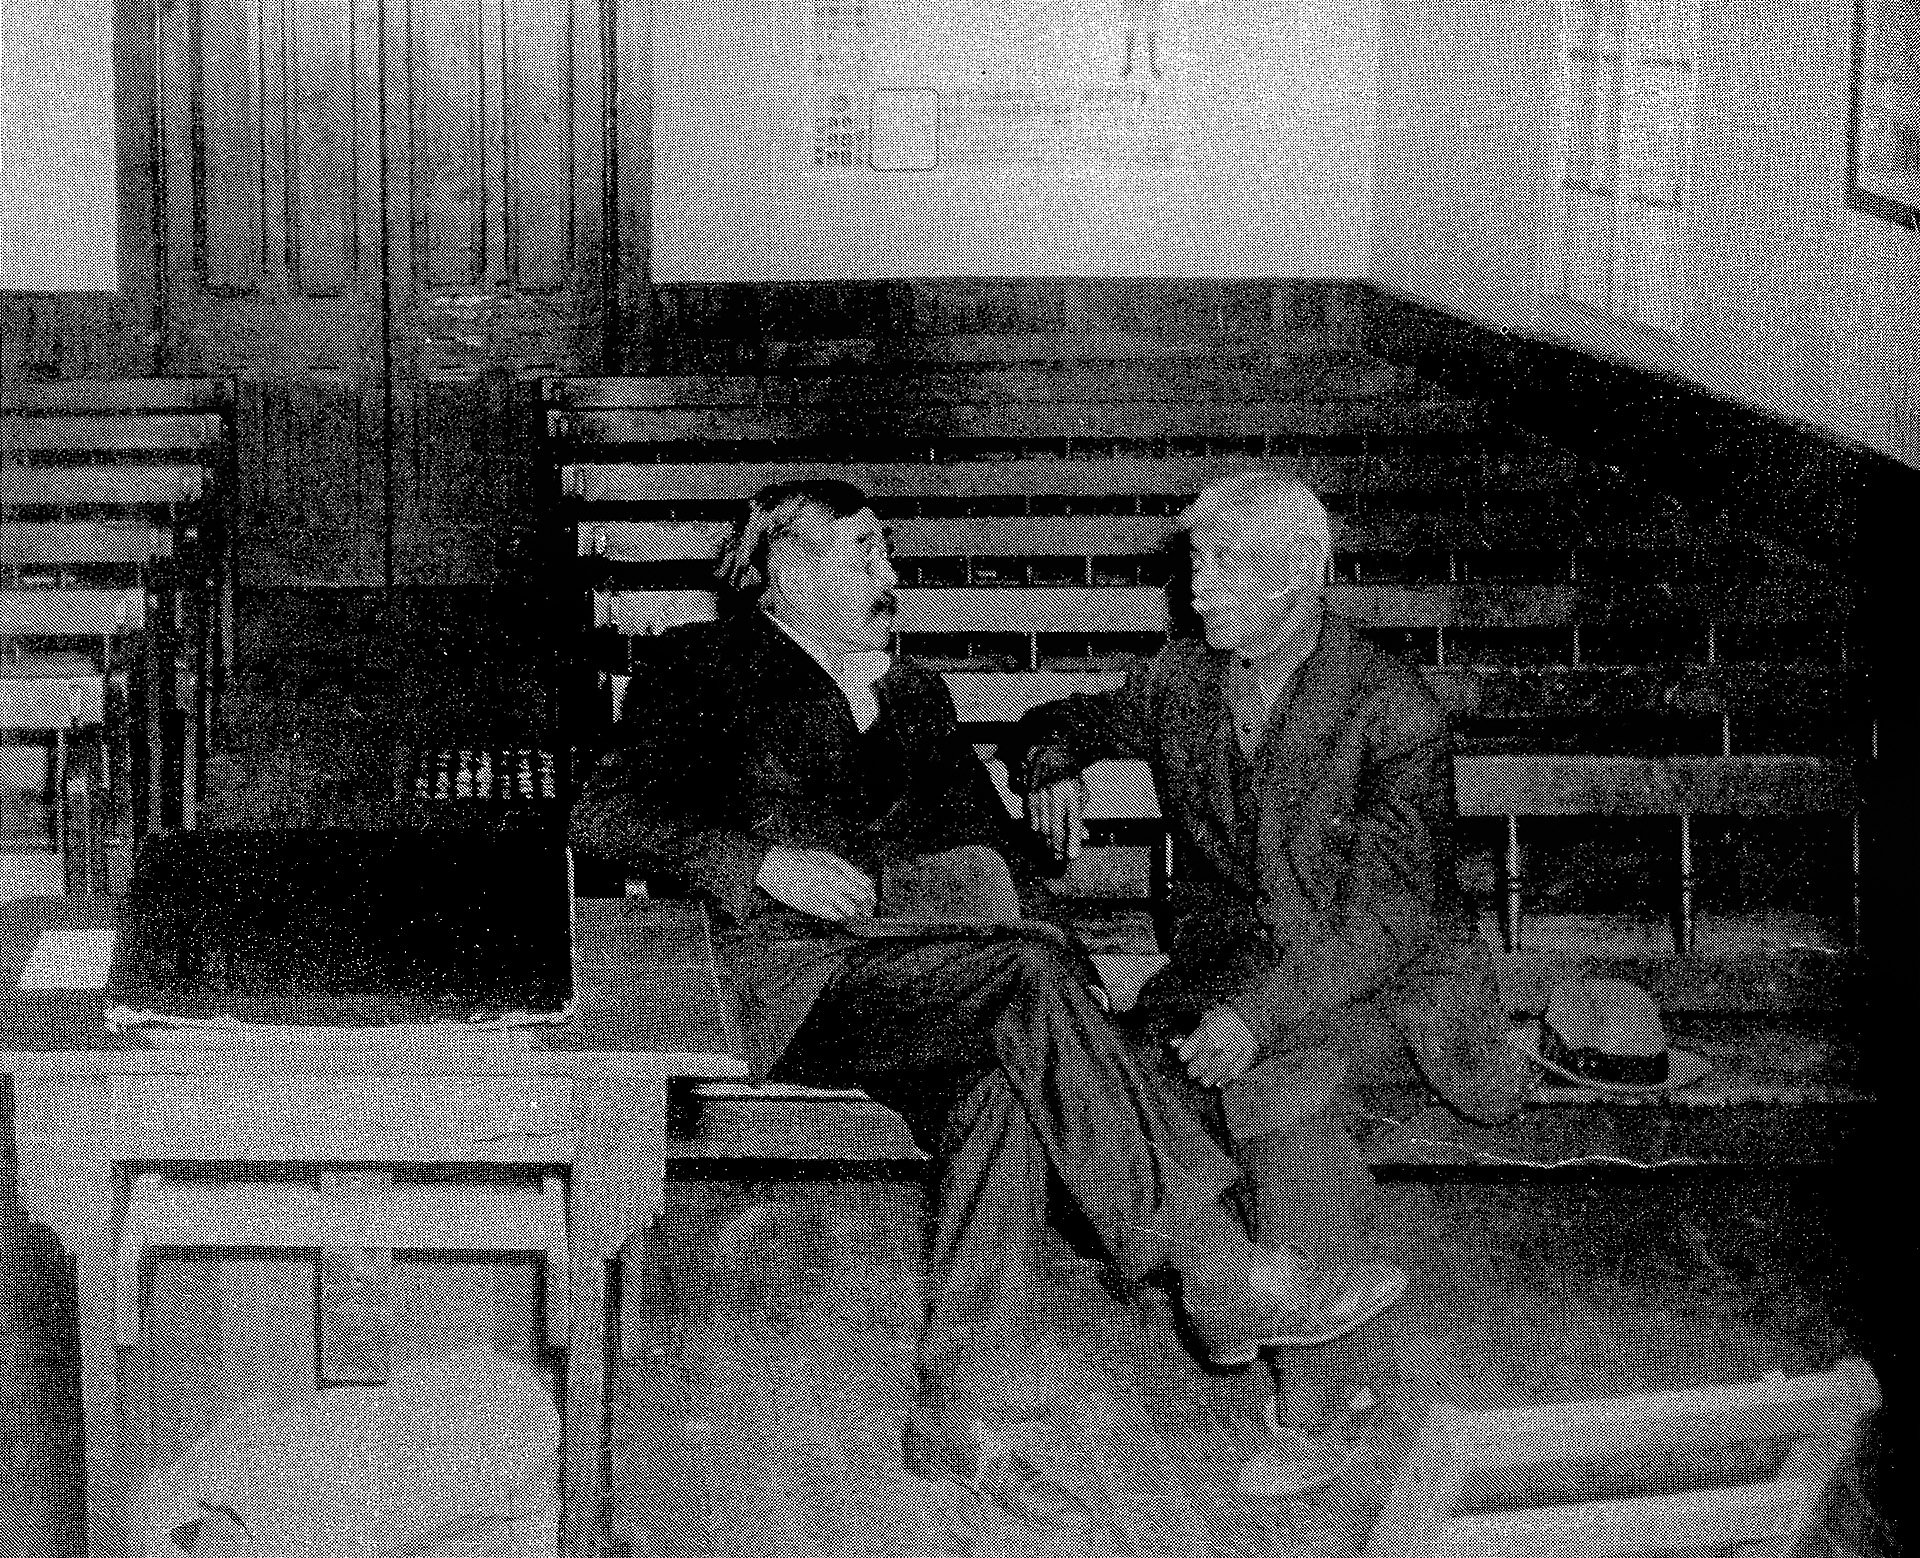 Charles-Bunn-and-Fred-Smith-Presbyterian-Church-c-1830-The-Shinnecock-Indians-a-culture-history-vol-vi-Gaynell-Stone-1983 Shinnecock Presbyterian Church Jeremy Dennis On This Site